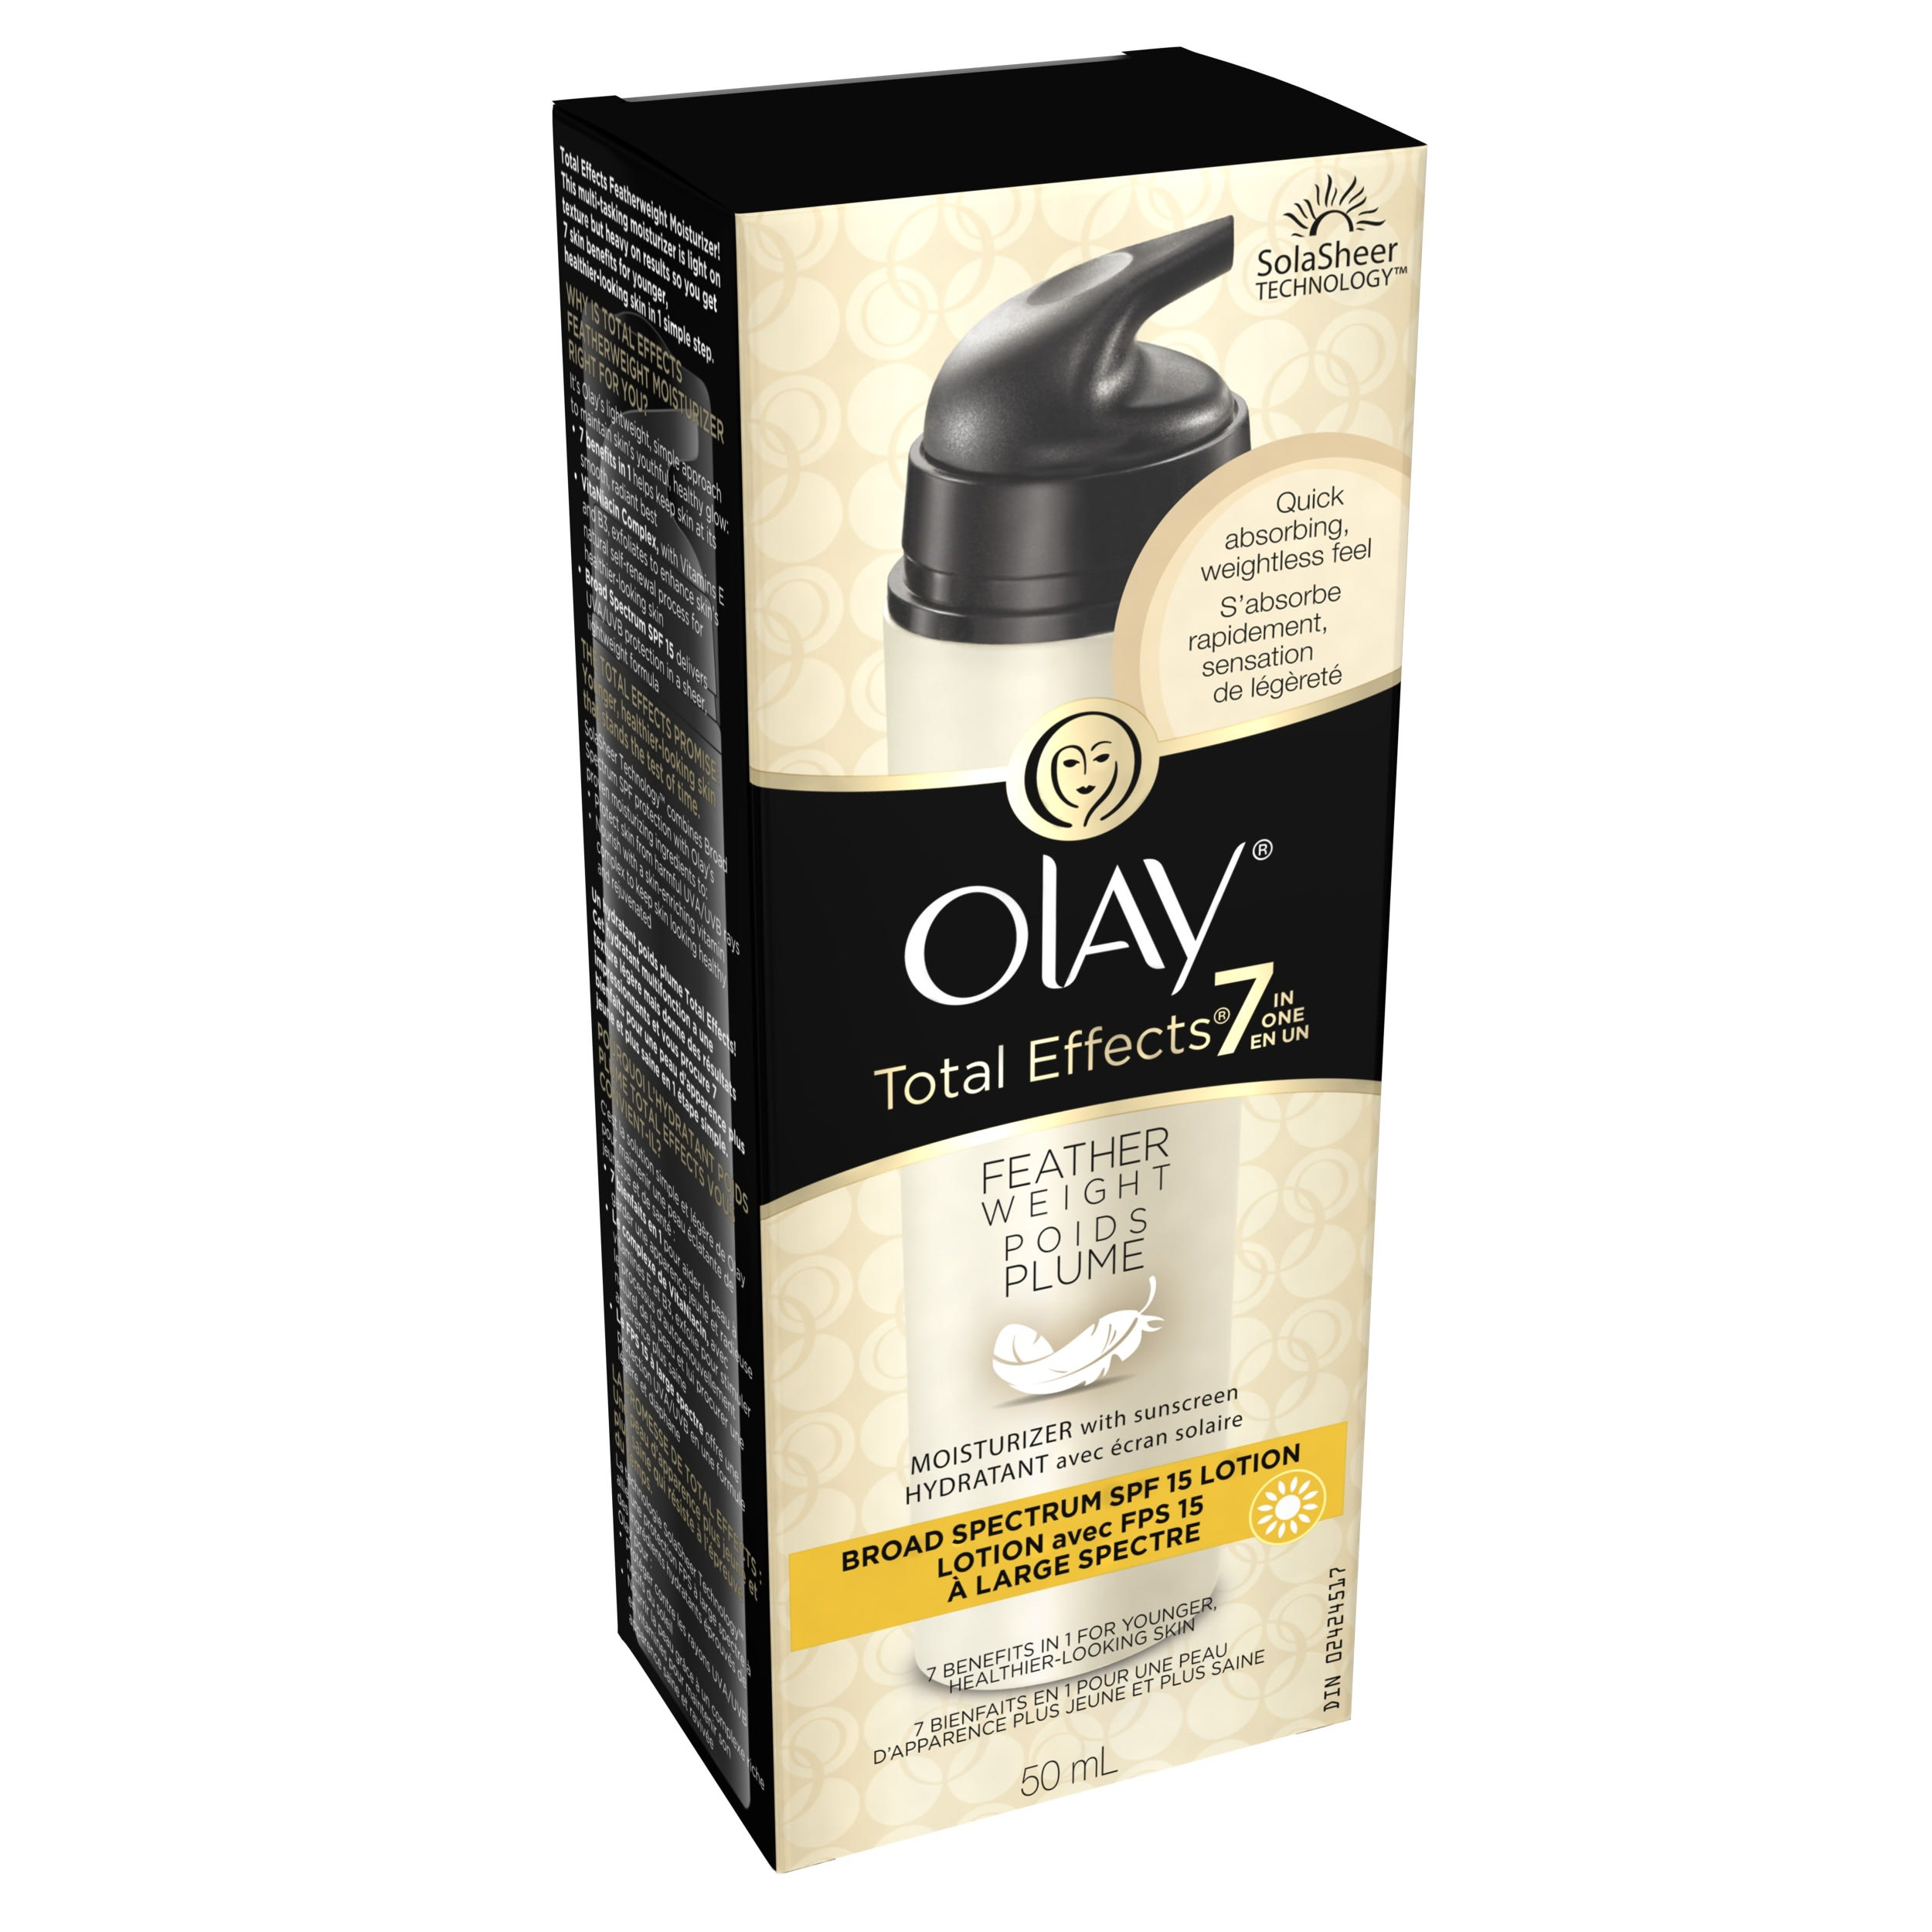 Olay Total Effects Feather Weight Moisturizer with SPF 15 2